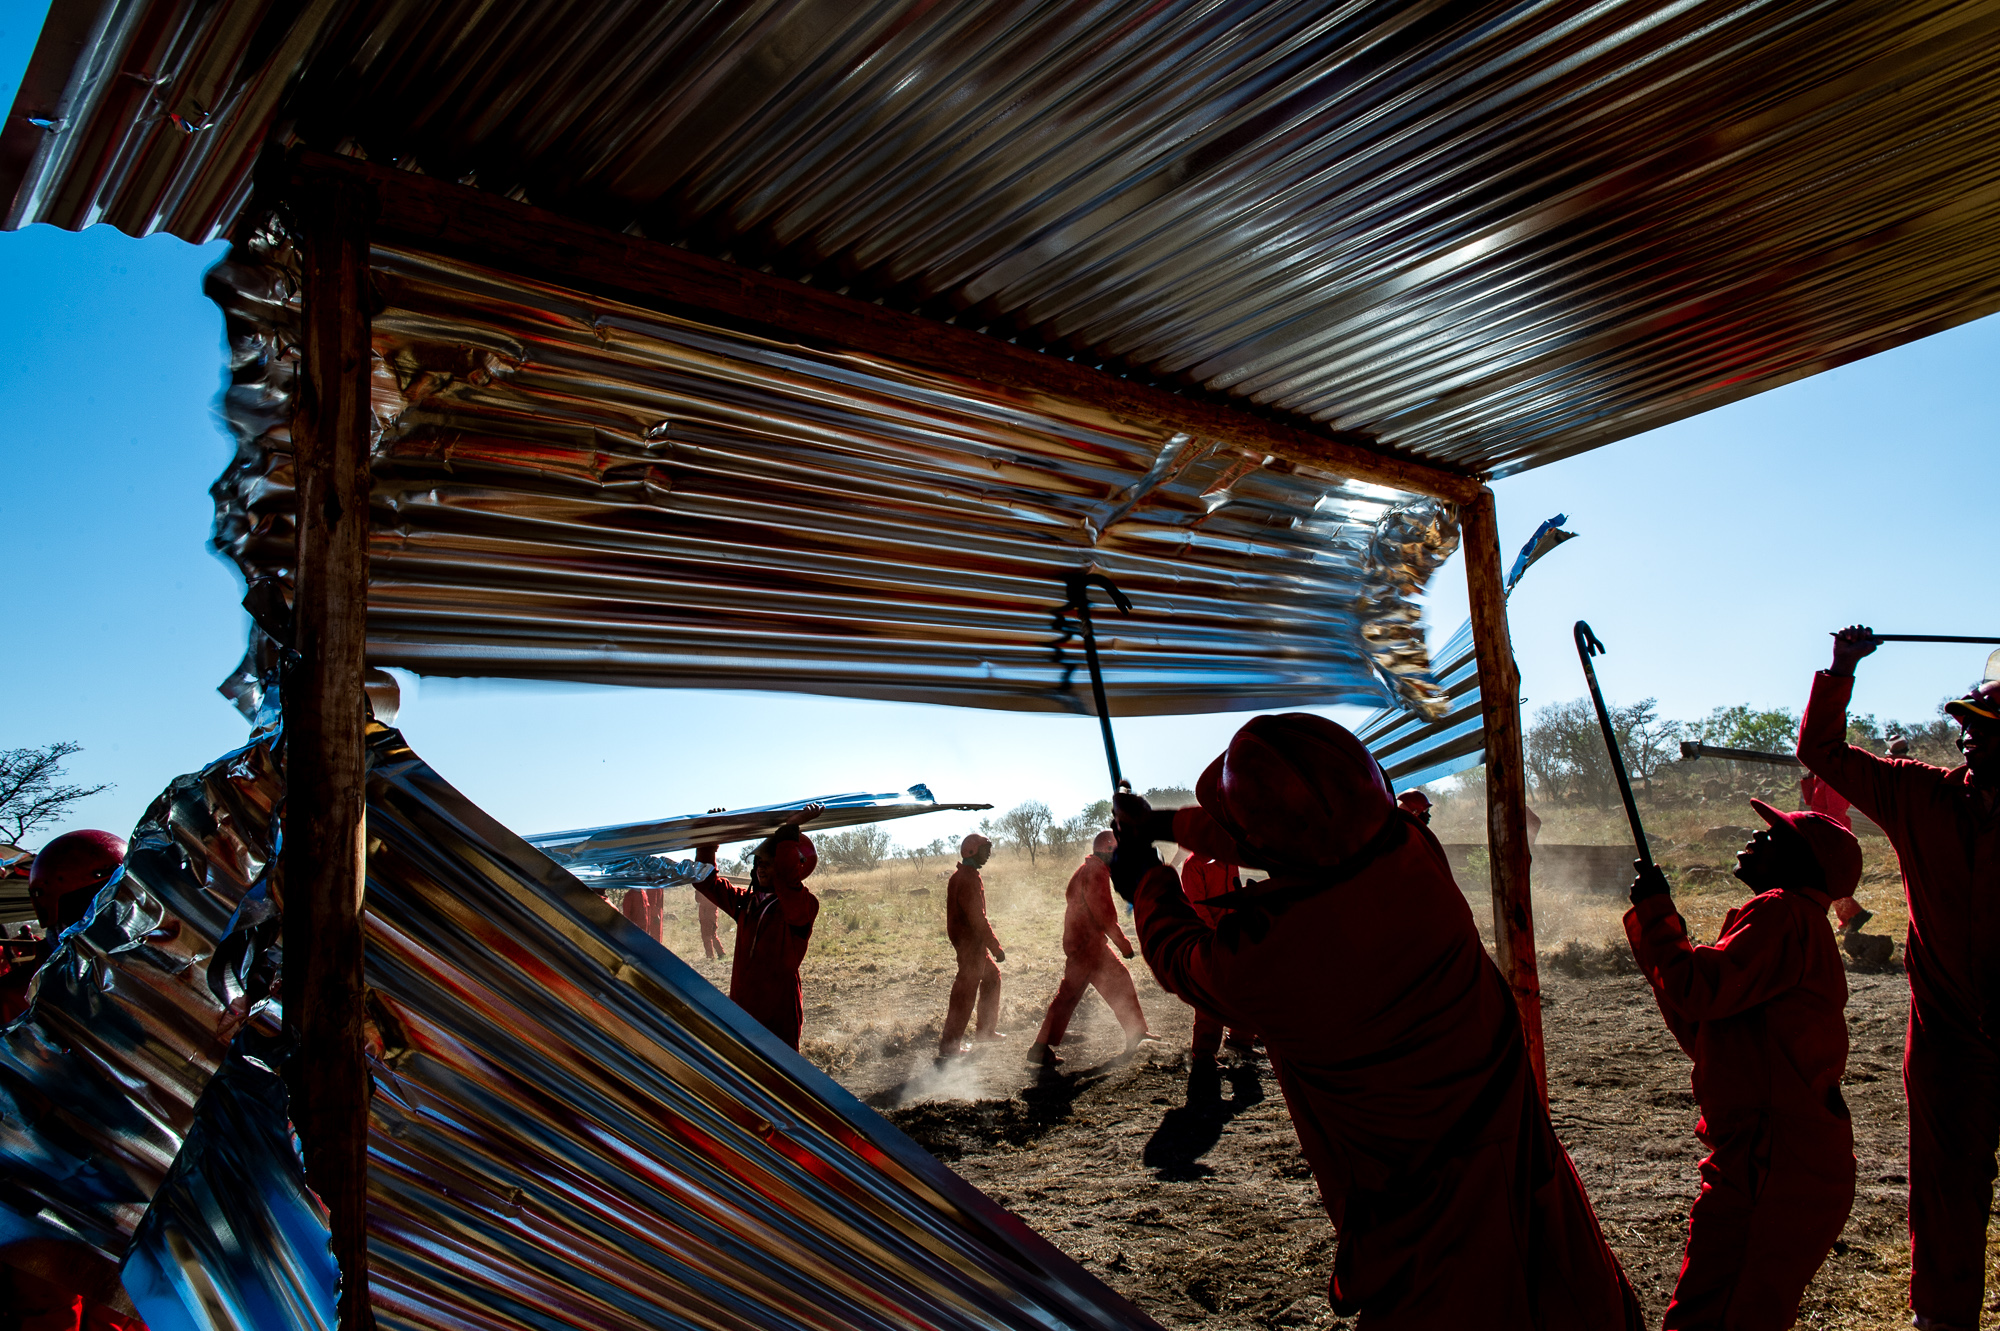 South Africa, Soshanguve, 11.09.2018 // Red Ants storm into and clear an illegal settlement on a landgrab scene. Landgrabs are occurring more often lately. In this instant, like in many others, the police refused to clear the settlement, so the Red Ants eviction-service was called in.  // Lucas Bäuml